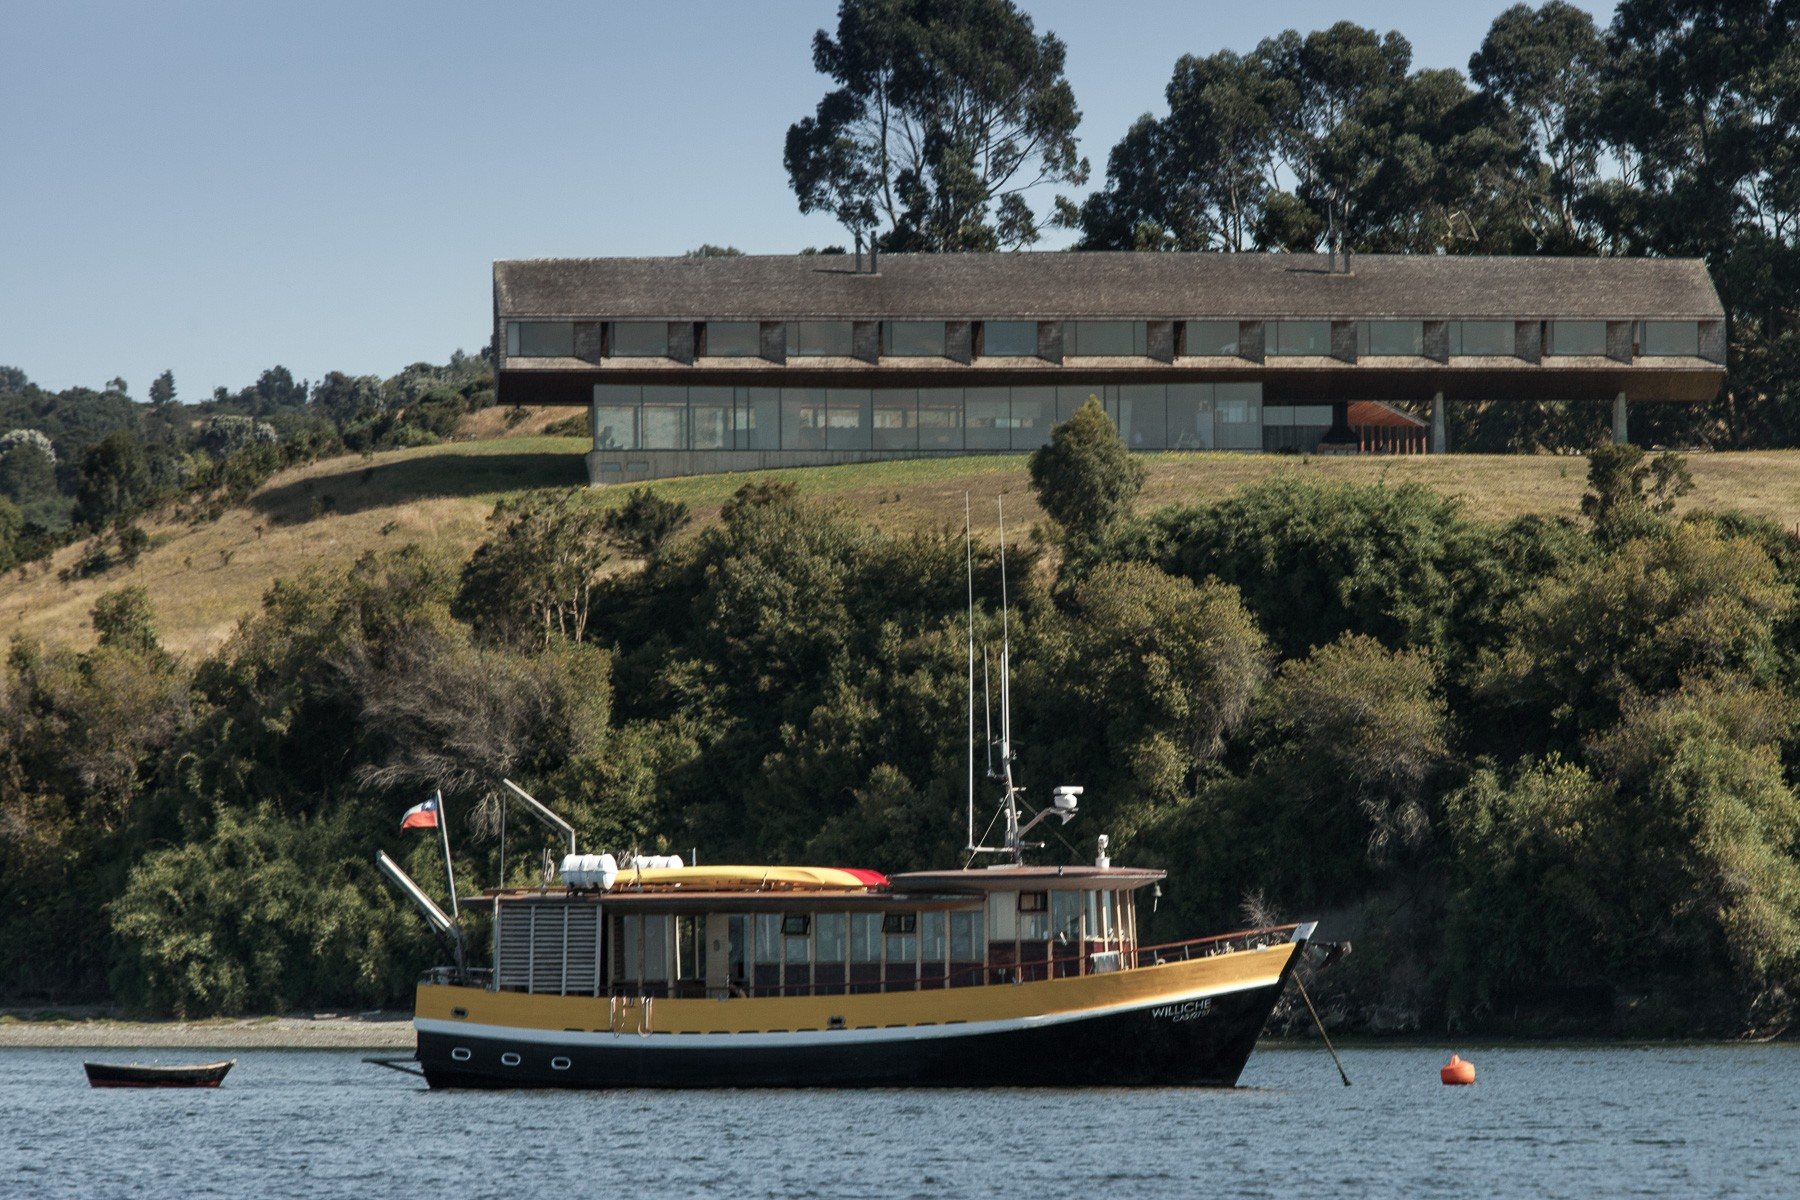 Hotel Tierra Chiloe View from Lake